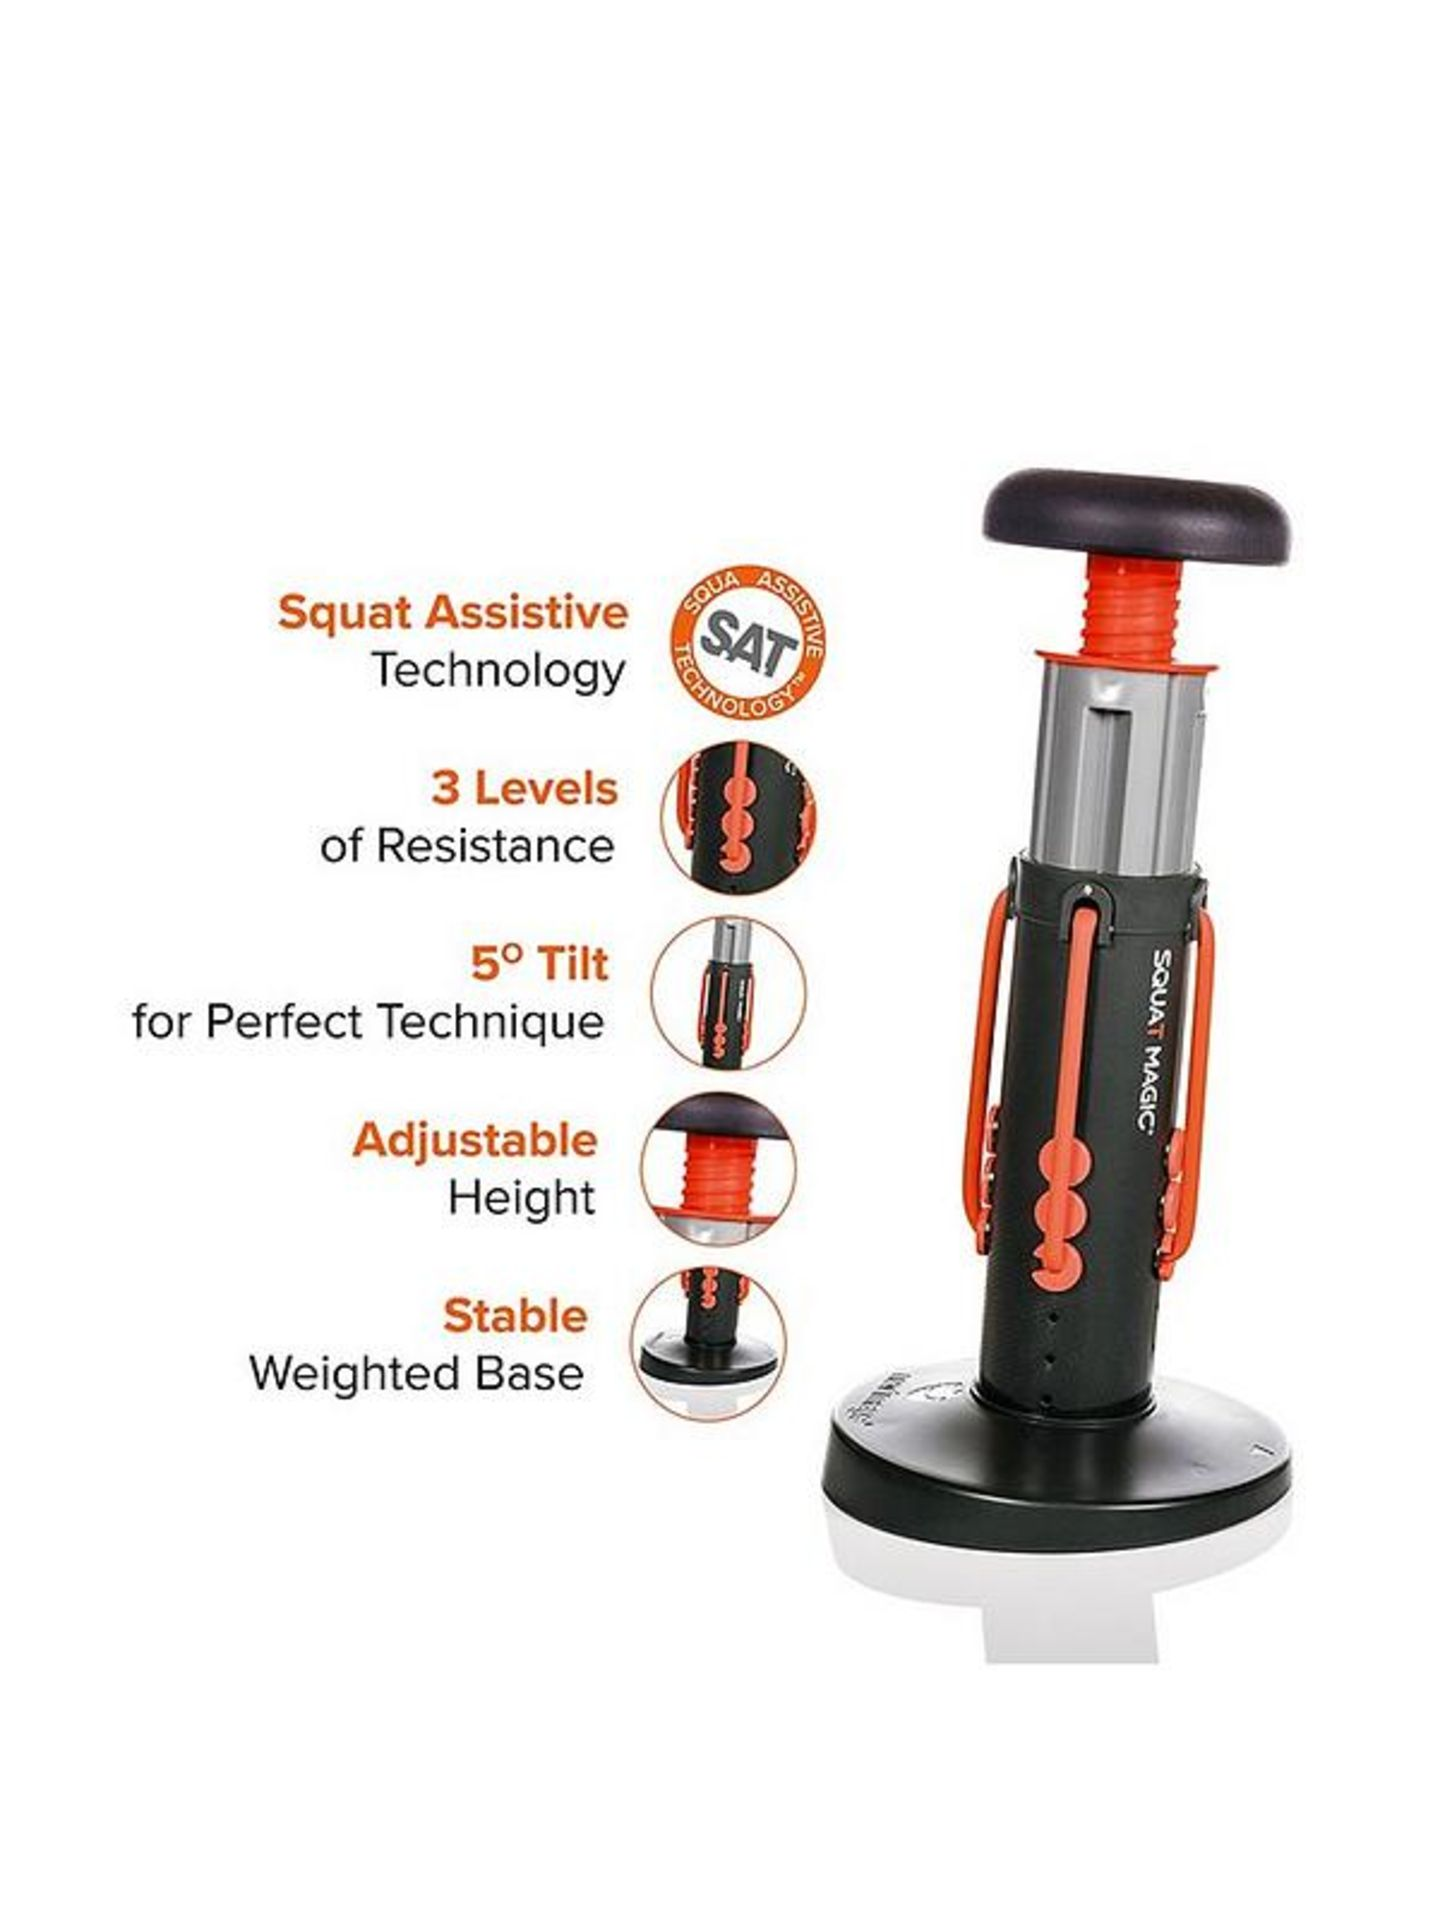 Brand New Clubfit - Adjustable Power Hand Grips (10 Kg - 40 Kg) Rrp 16.99 - Image 3 of 5